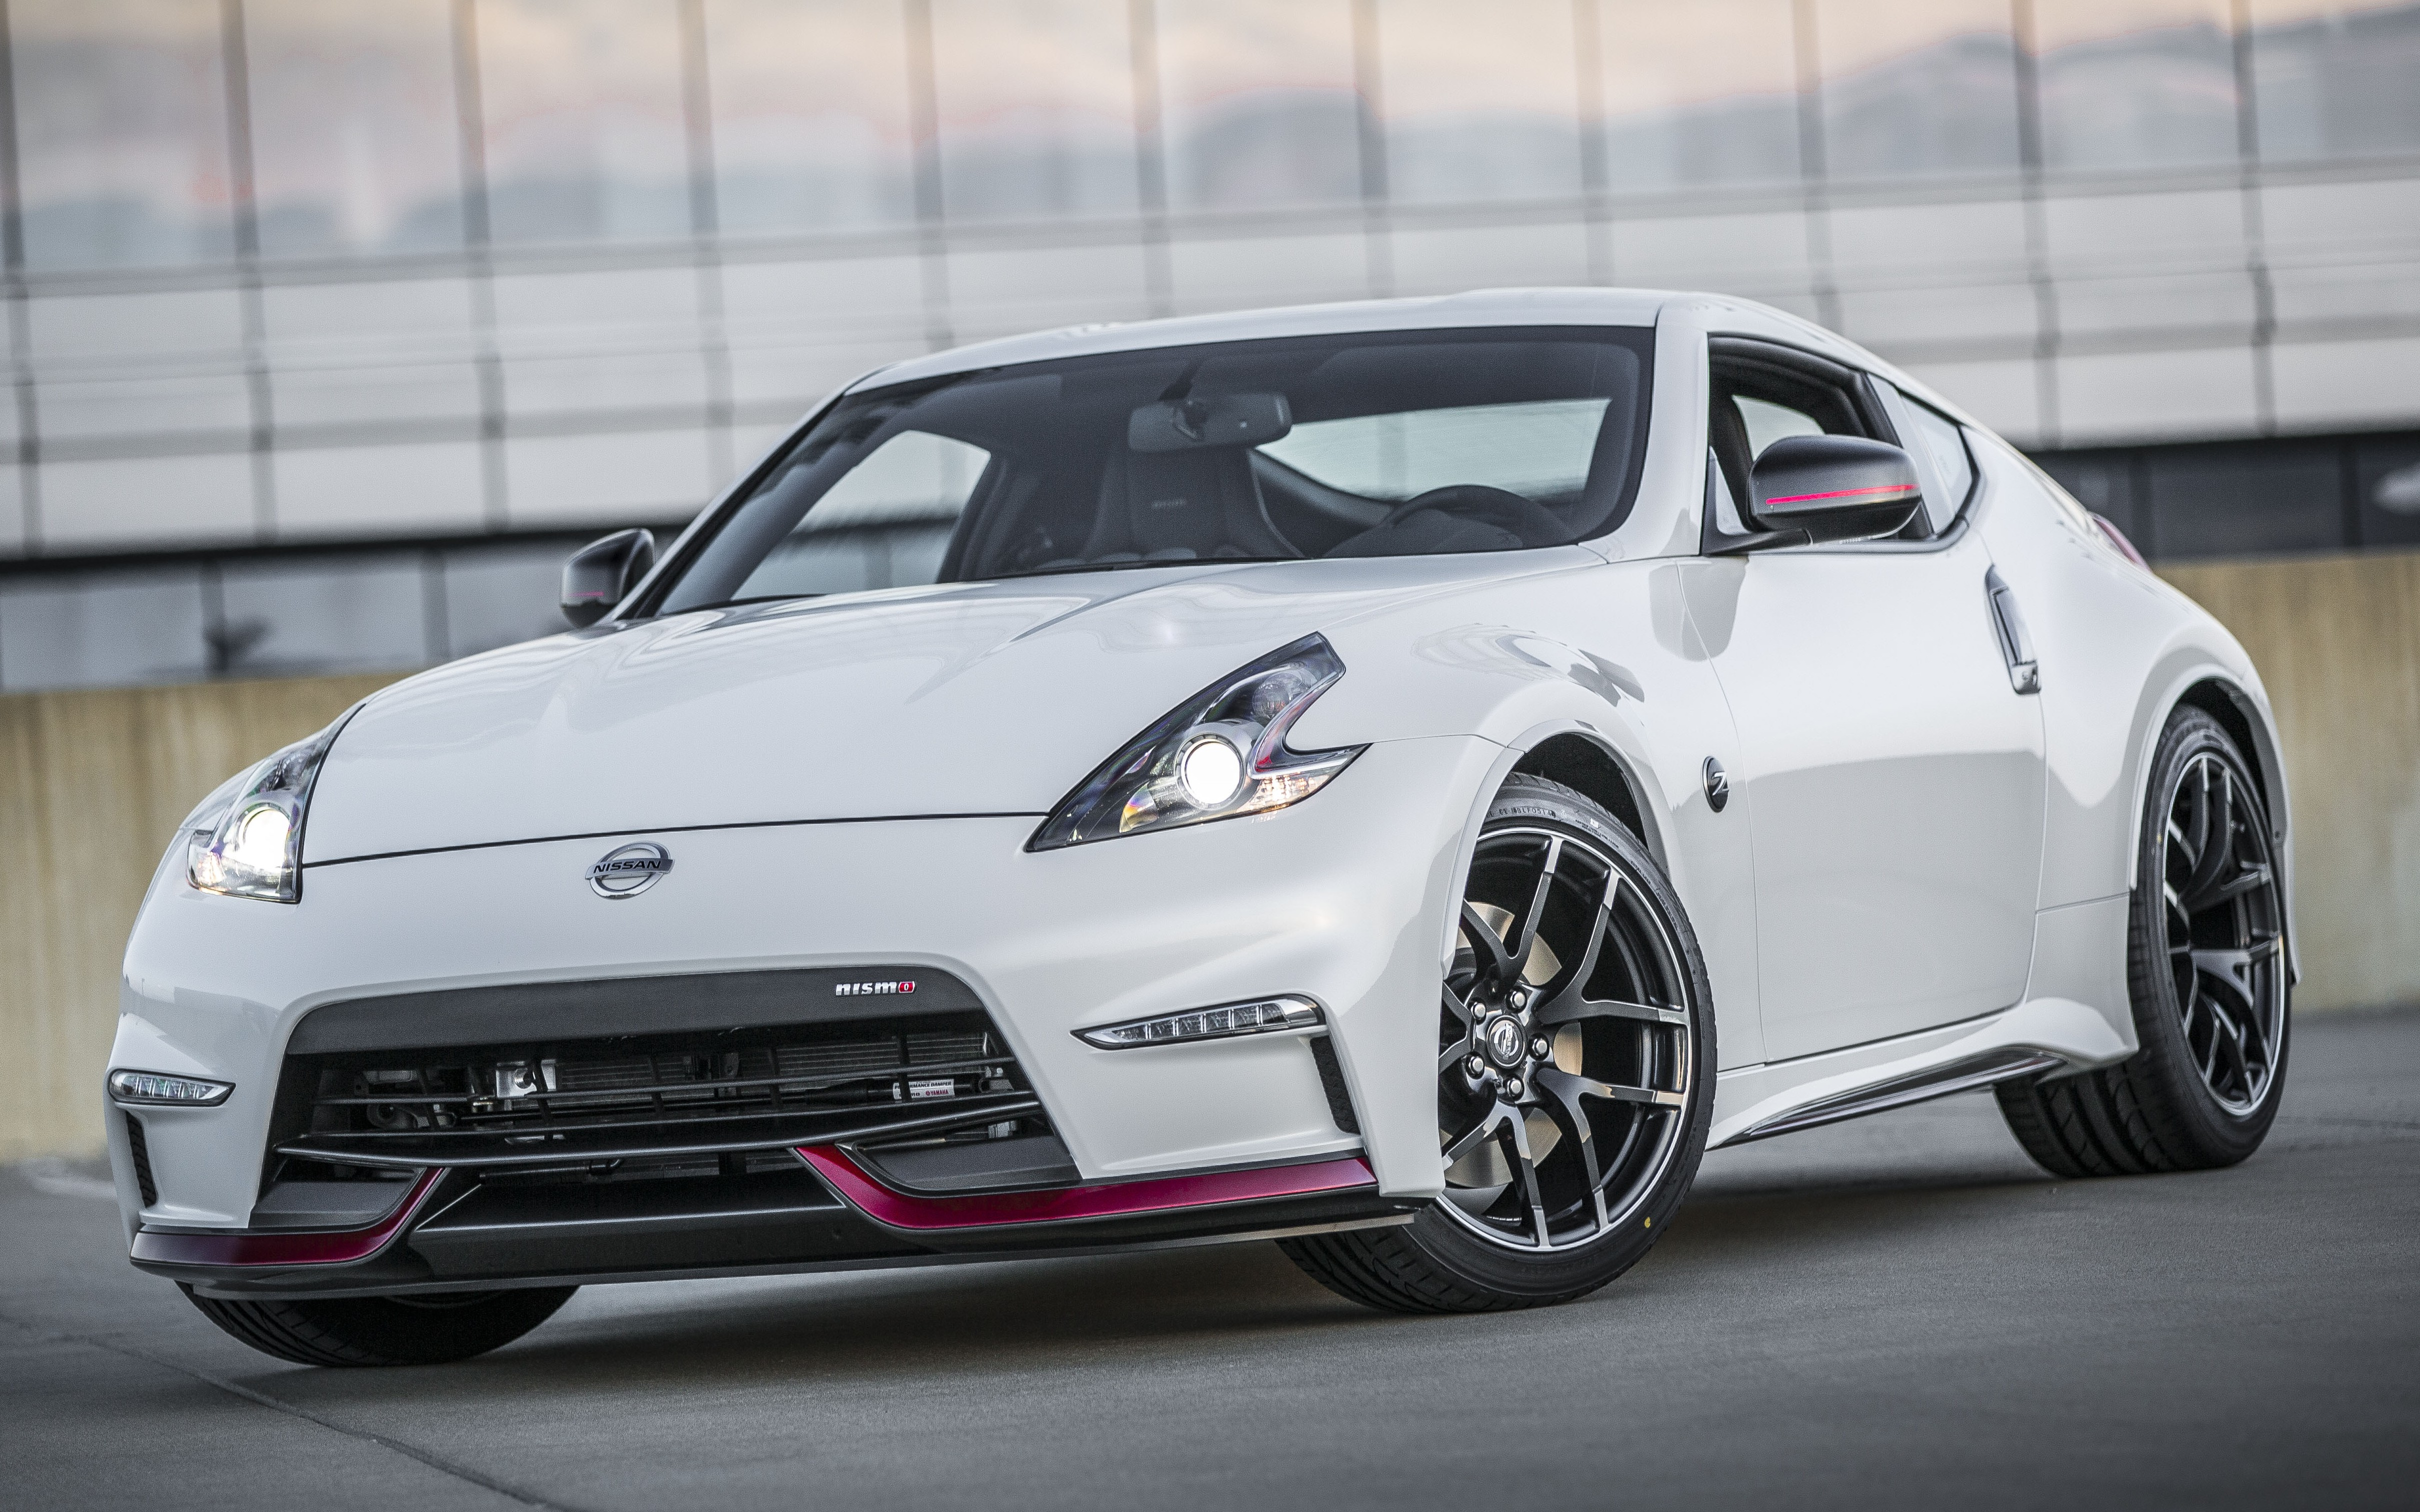 2015 nissan 370z nismo new looks 7 speed auto. Black Bedroom Furniture Sets. Home Design Ideas